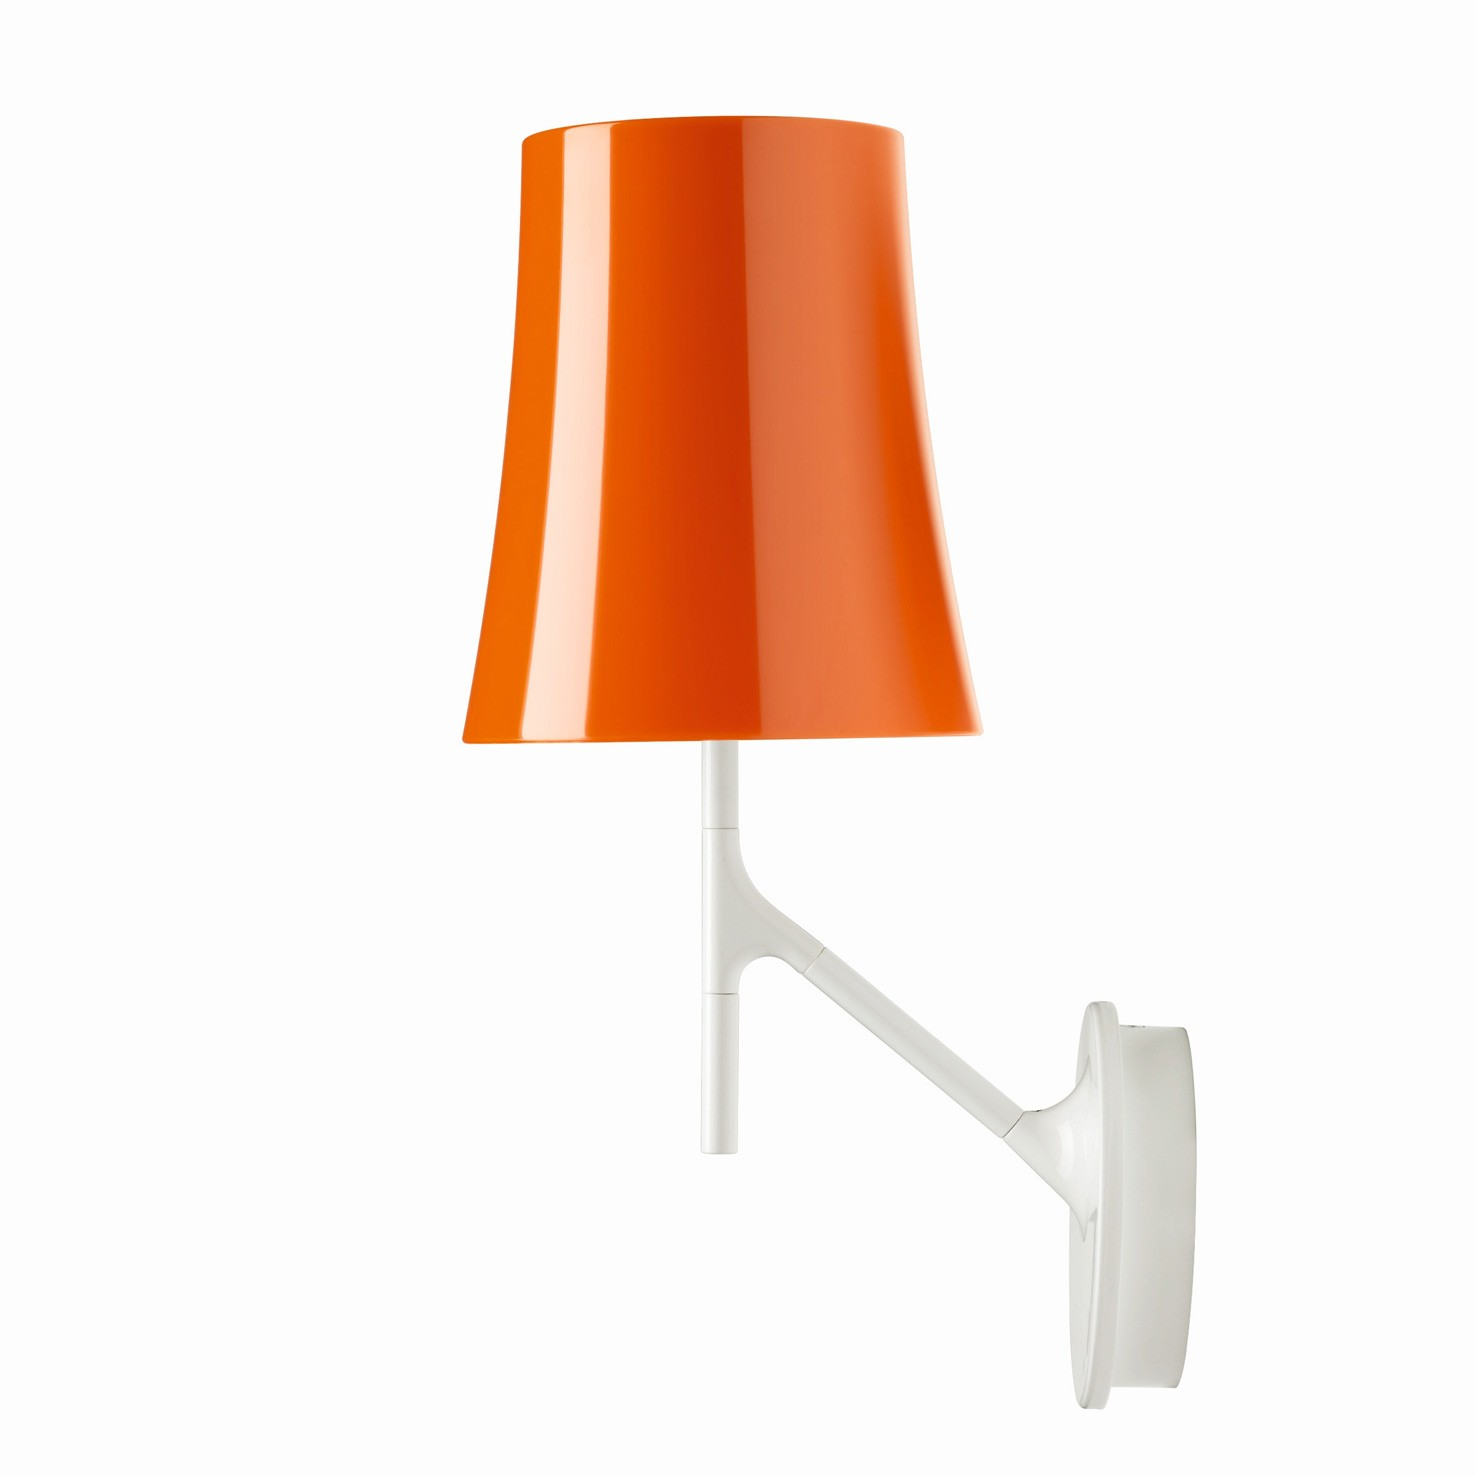 wandlampe birdie mit touch dimmer von foscarini. Black Bedroom Furniture Sets. Home Design Ideas